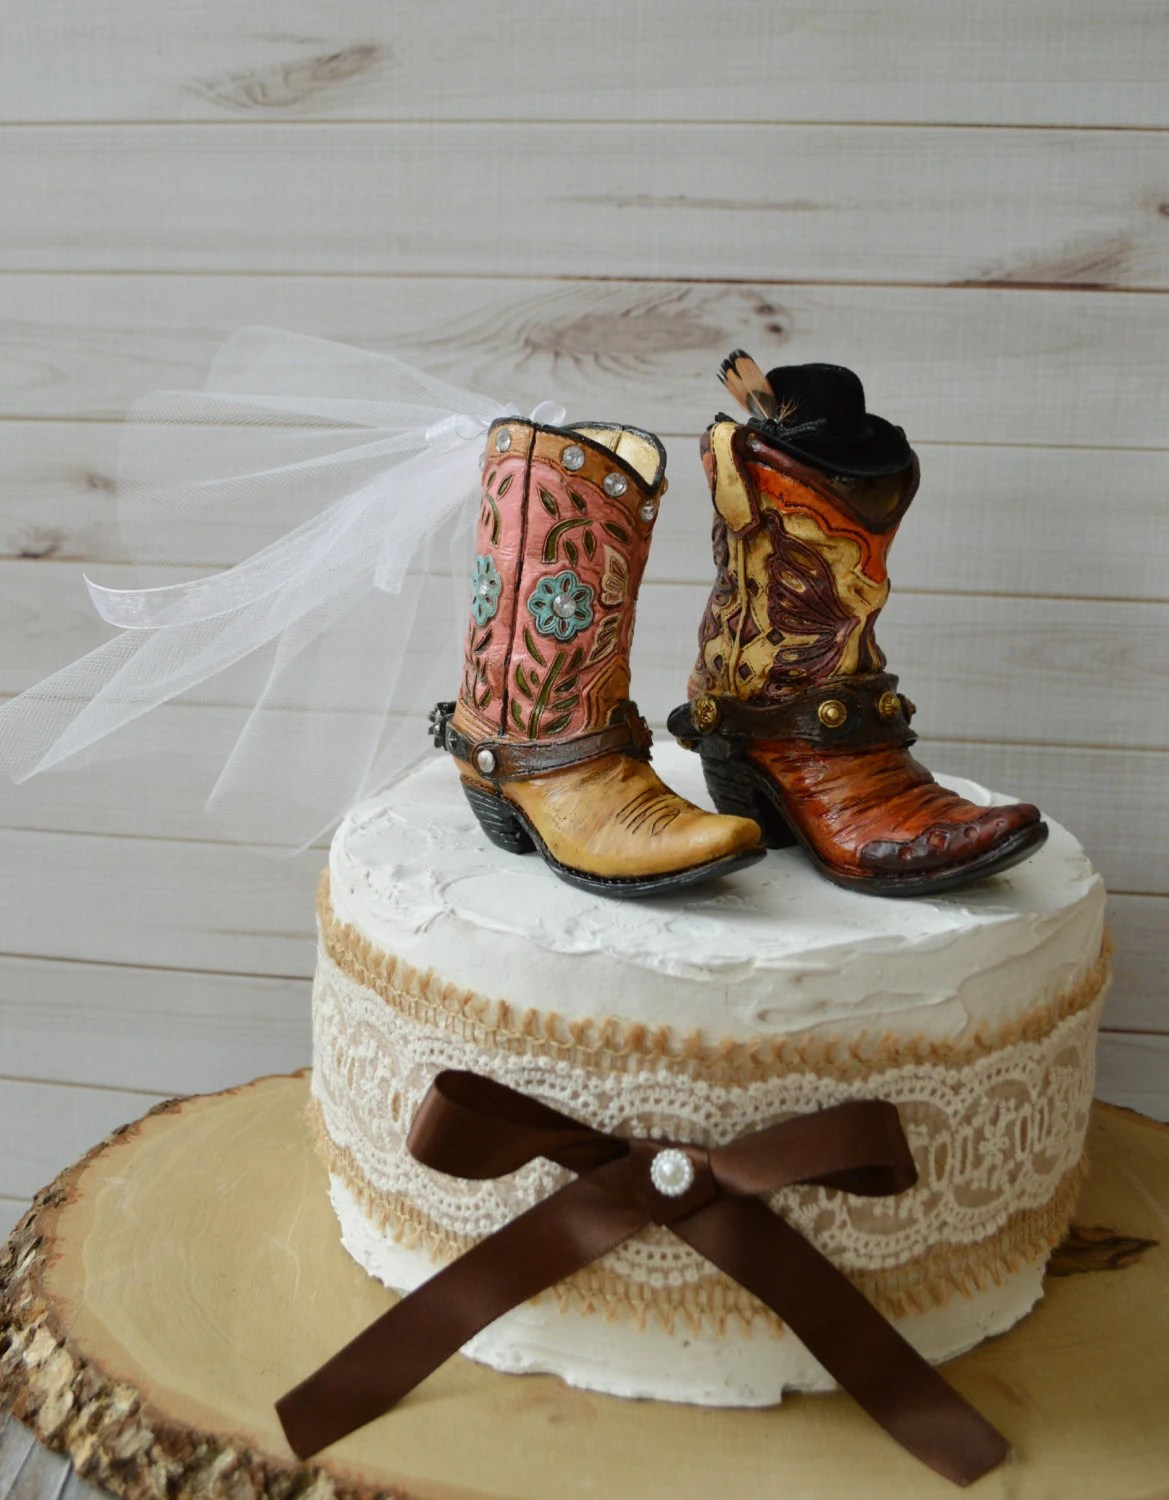 cowboy boot spurs wedding cowboy boots cowboy cowgirl wedding boot cake topper hat western country weddings rustic groom s cake boots and spurs bride and groom ranch barn themed